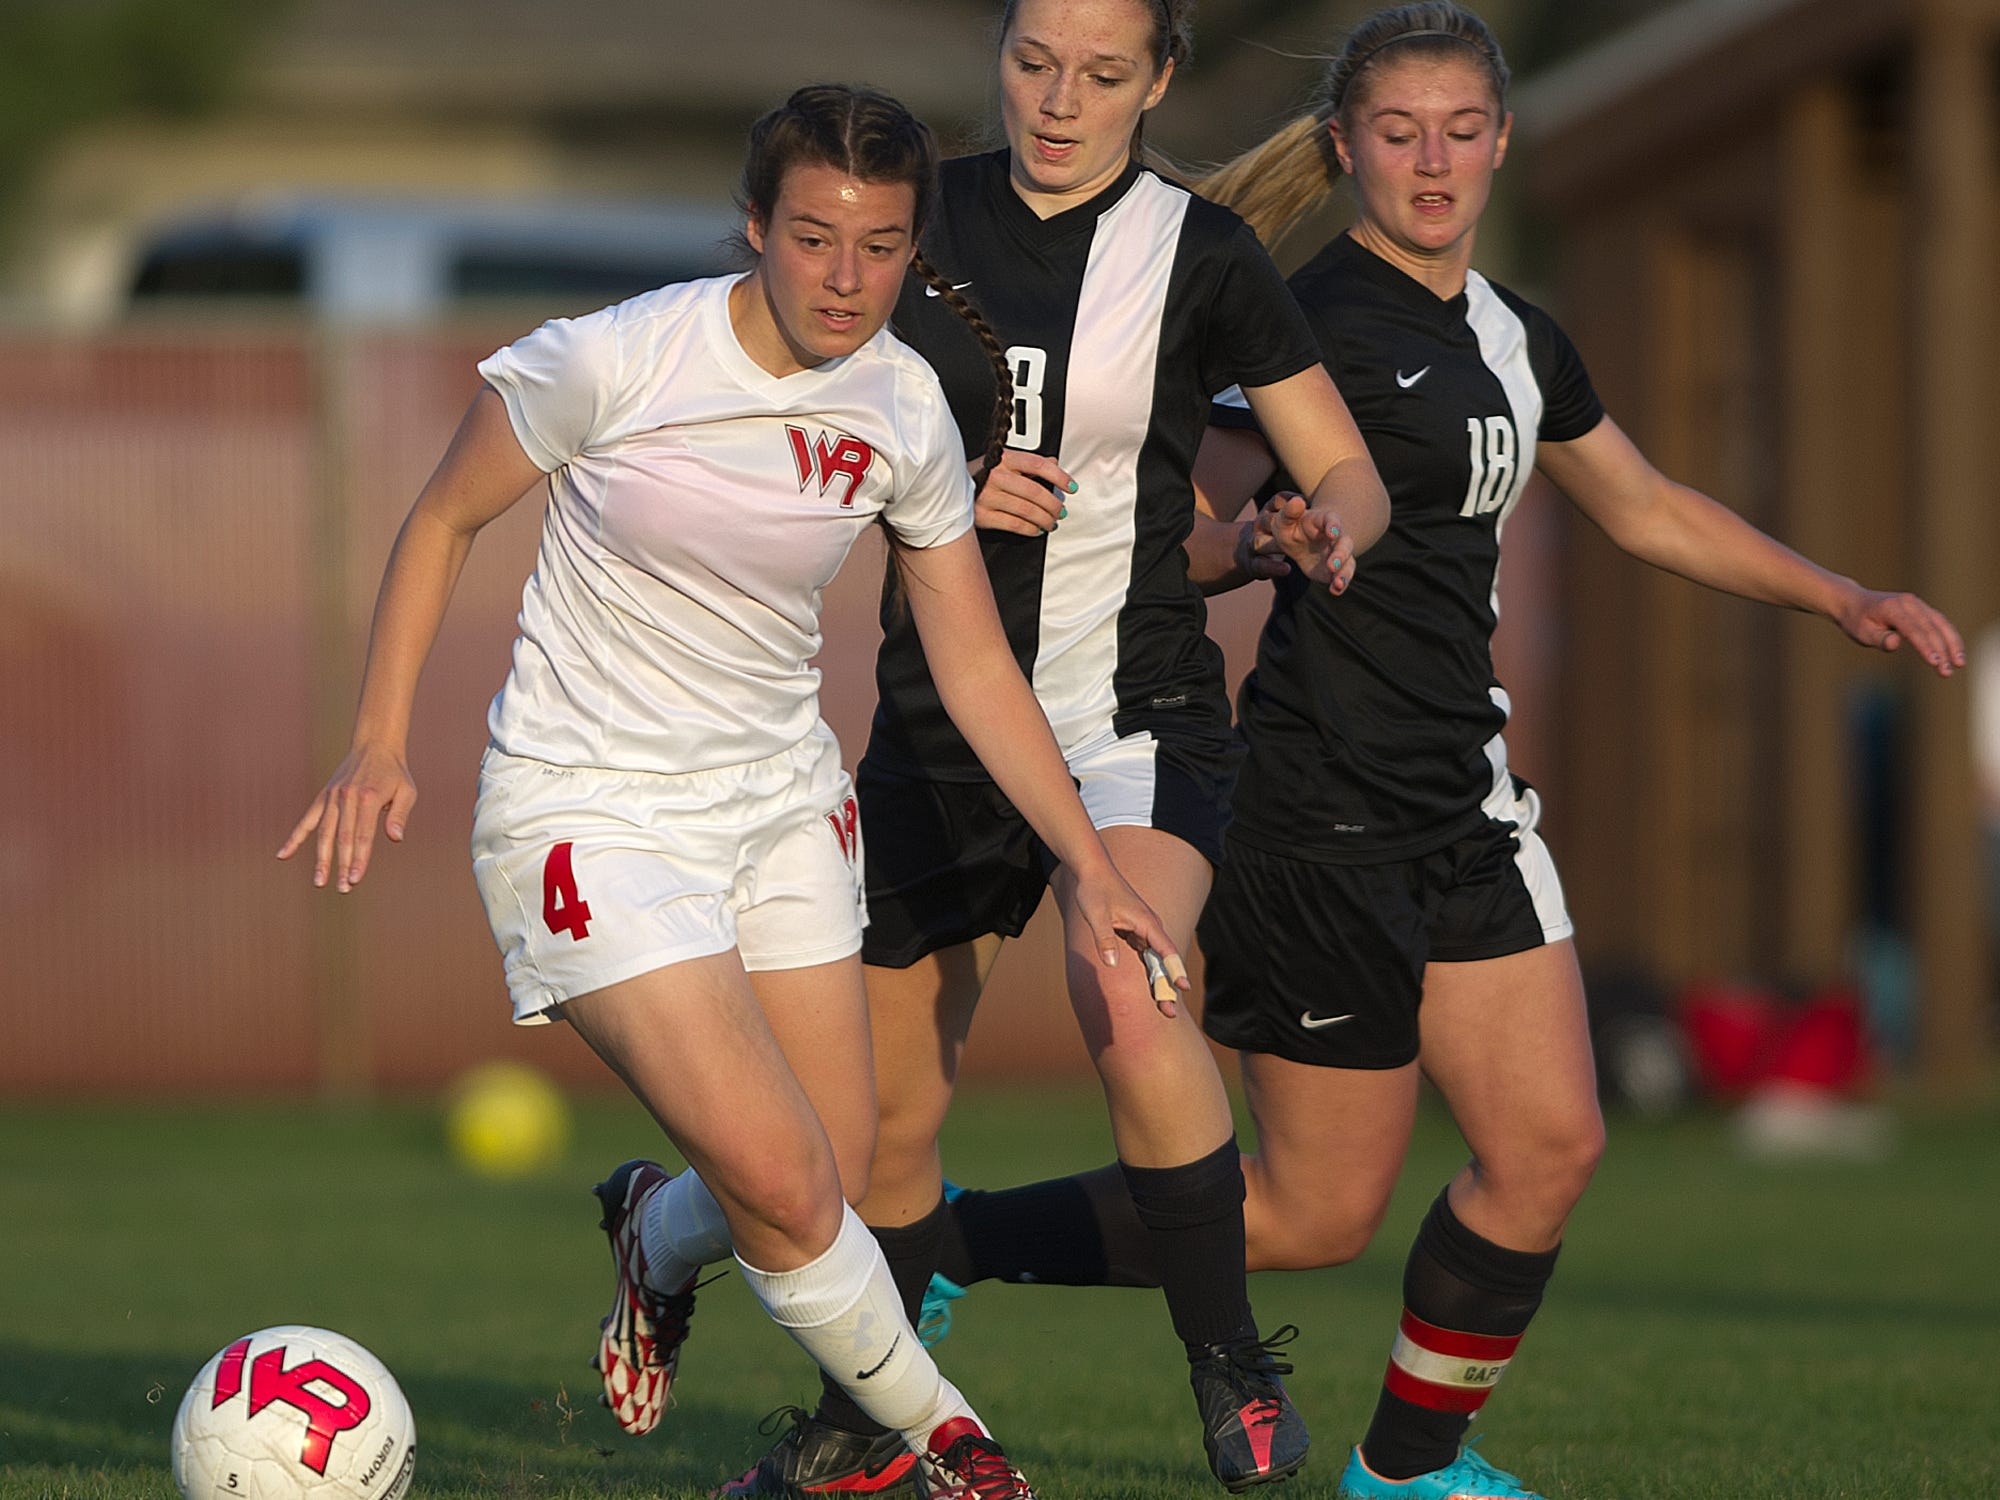 Wisconsin Rapids' Katie Kiiskila, left, moves past Stevens Point Area Senior High's Sarah Rosenthal, center, and Abby Bohanski during a Wisconsin Valley Conference soccer game Tuesday at Washington Field in Wisconsin Rapids.